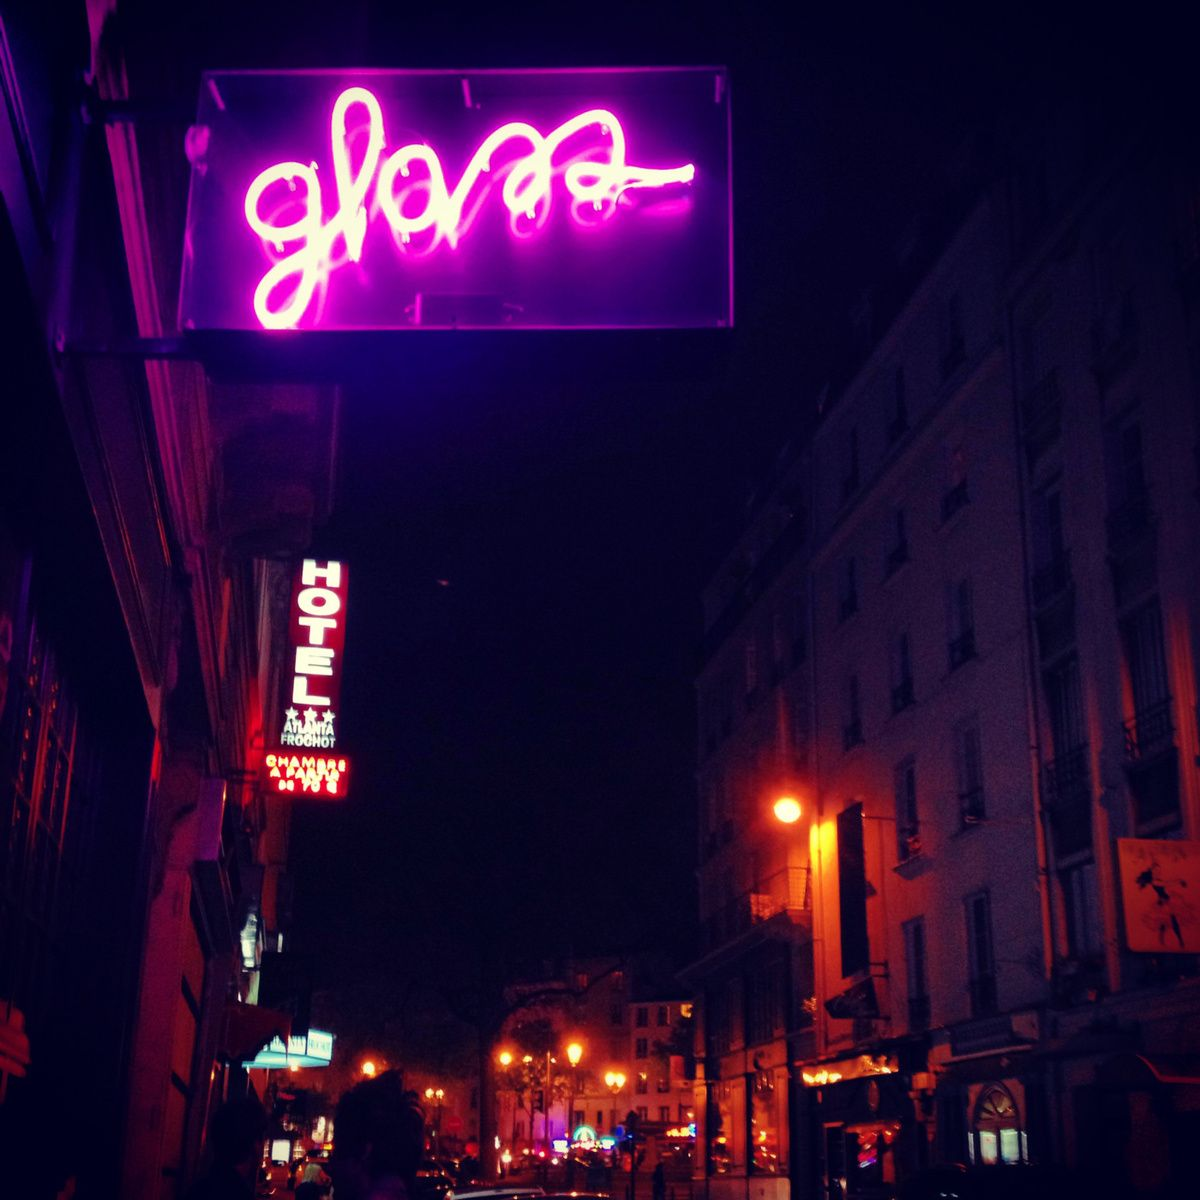 Run by the team behind Candelaria, Glass has earned itself a solid reputation in Pigalle. The bar specializes in world beers, Latin American spirits including mezcla and pisco, as well as inventive cocktails, pop in for a drink after a long day at Fashion Week.